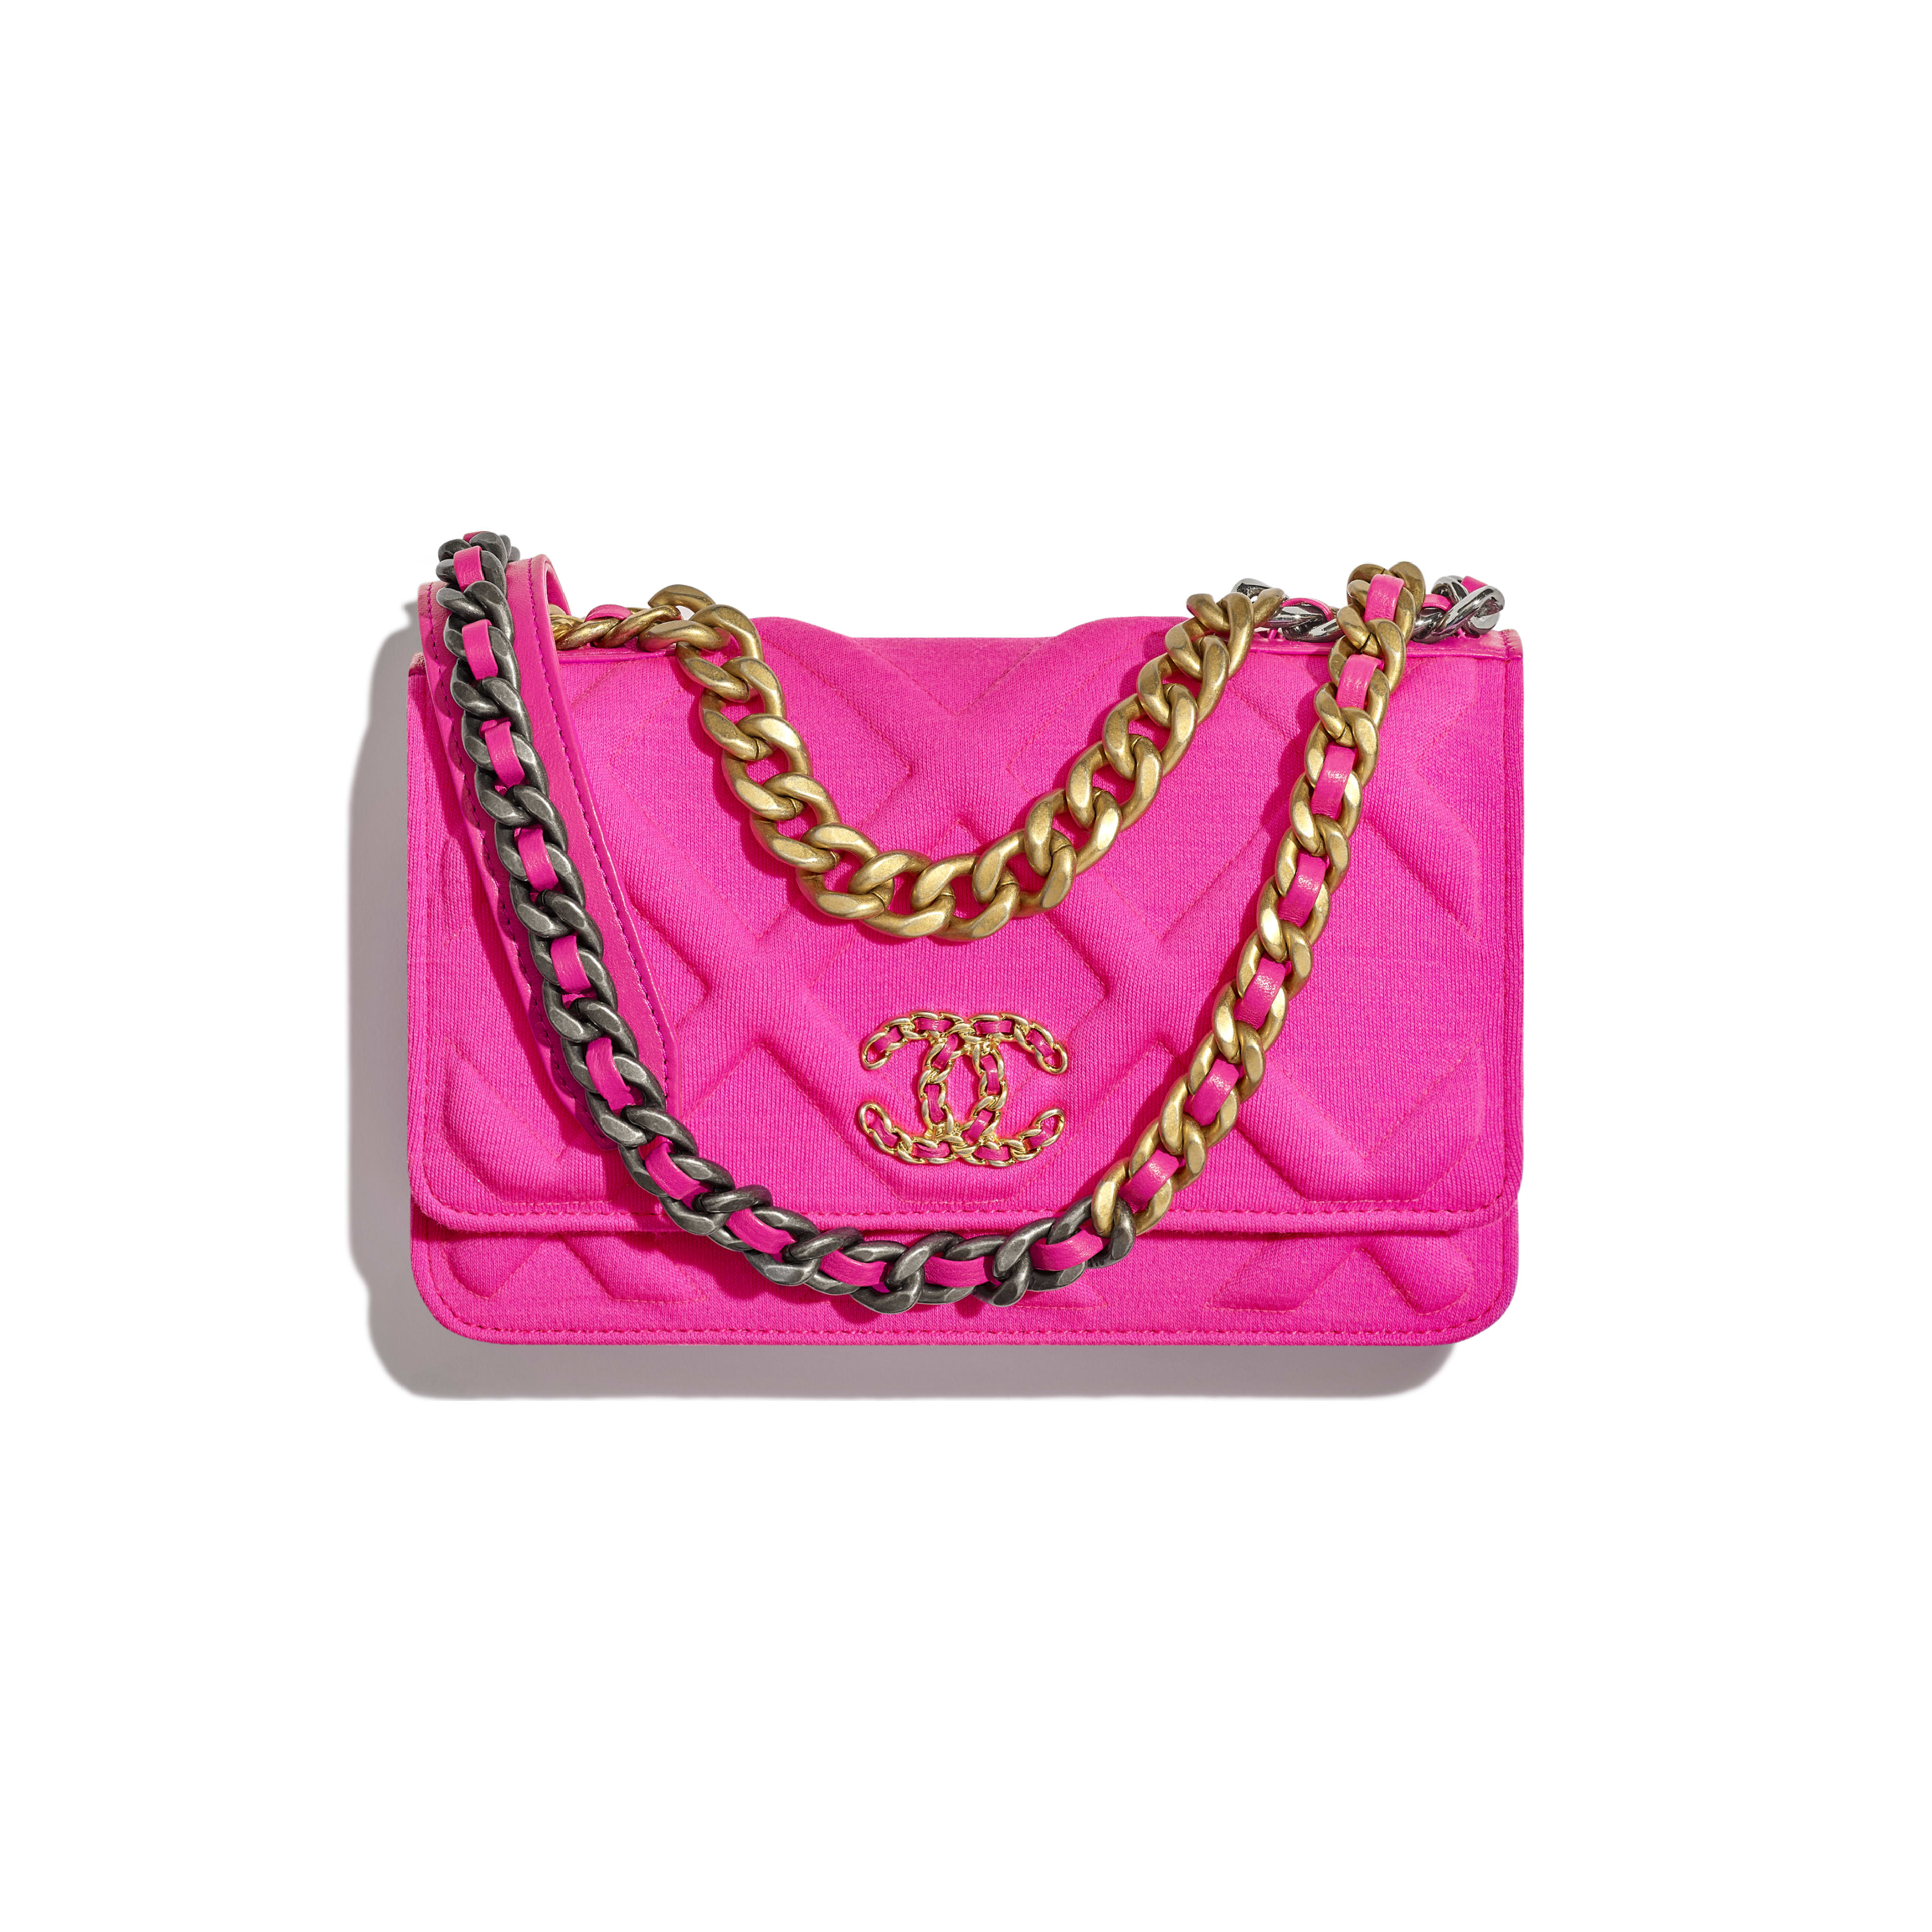 CHANEL 19 Wallet on Chain - Fuchsia - Jersey, Gold-Tone, Silver-Tone & Ruthenium-Finish Metal - Default view - see full sized version